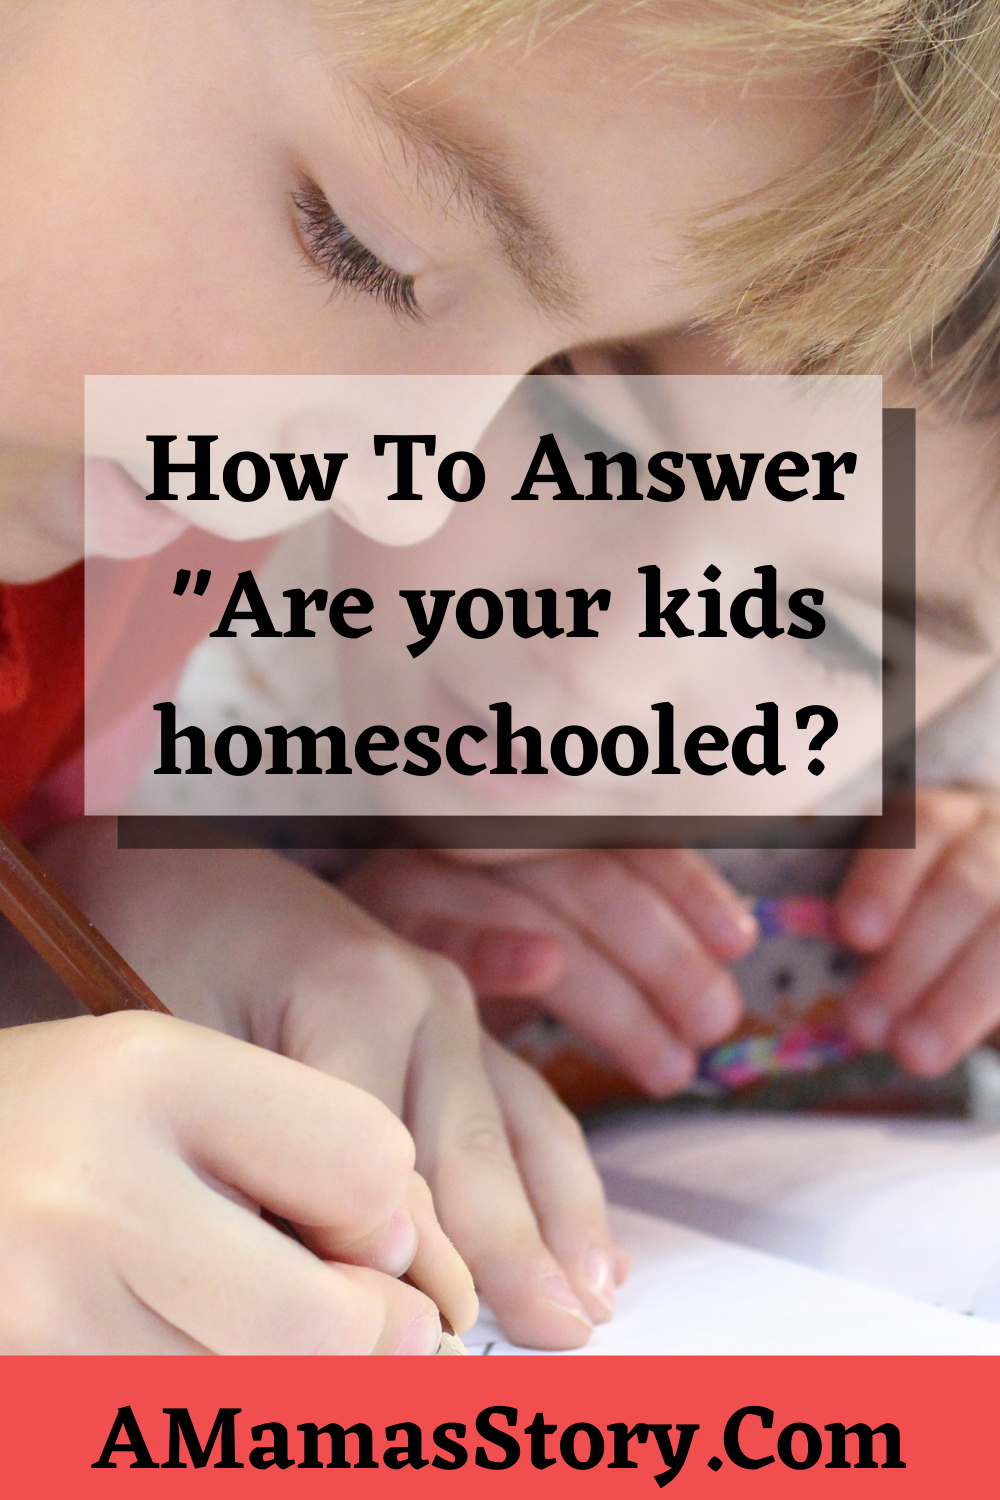 Are your kids homeschooled?